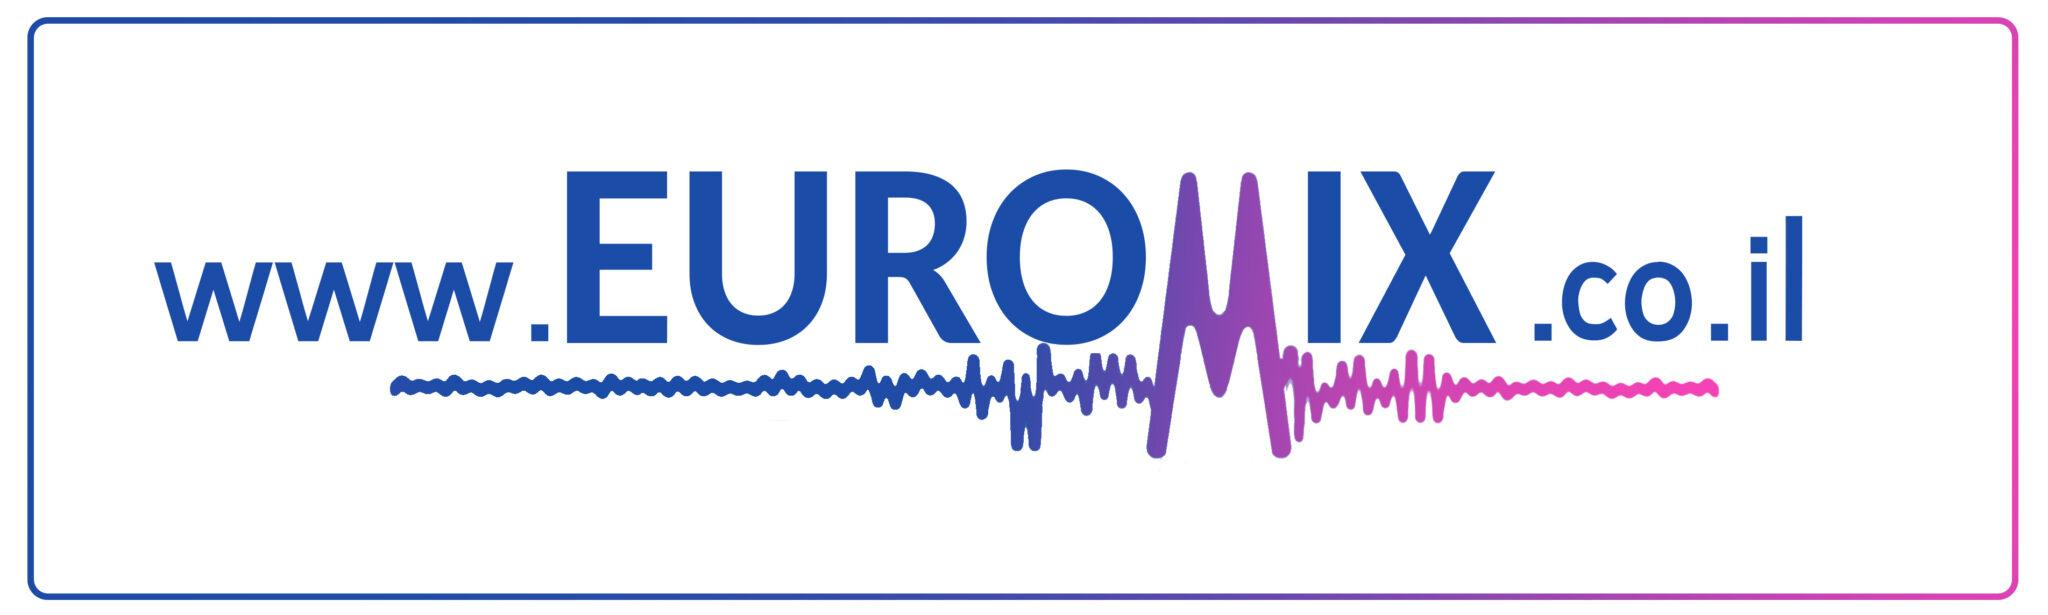 www.euromix.co.il